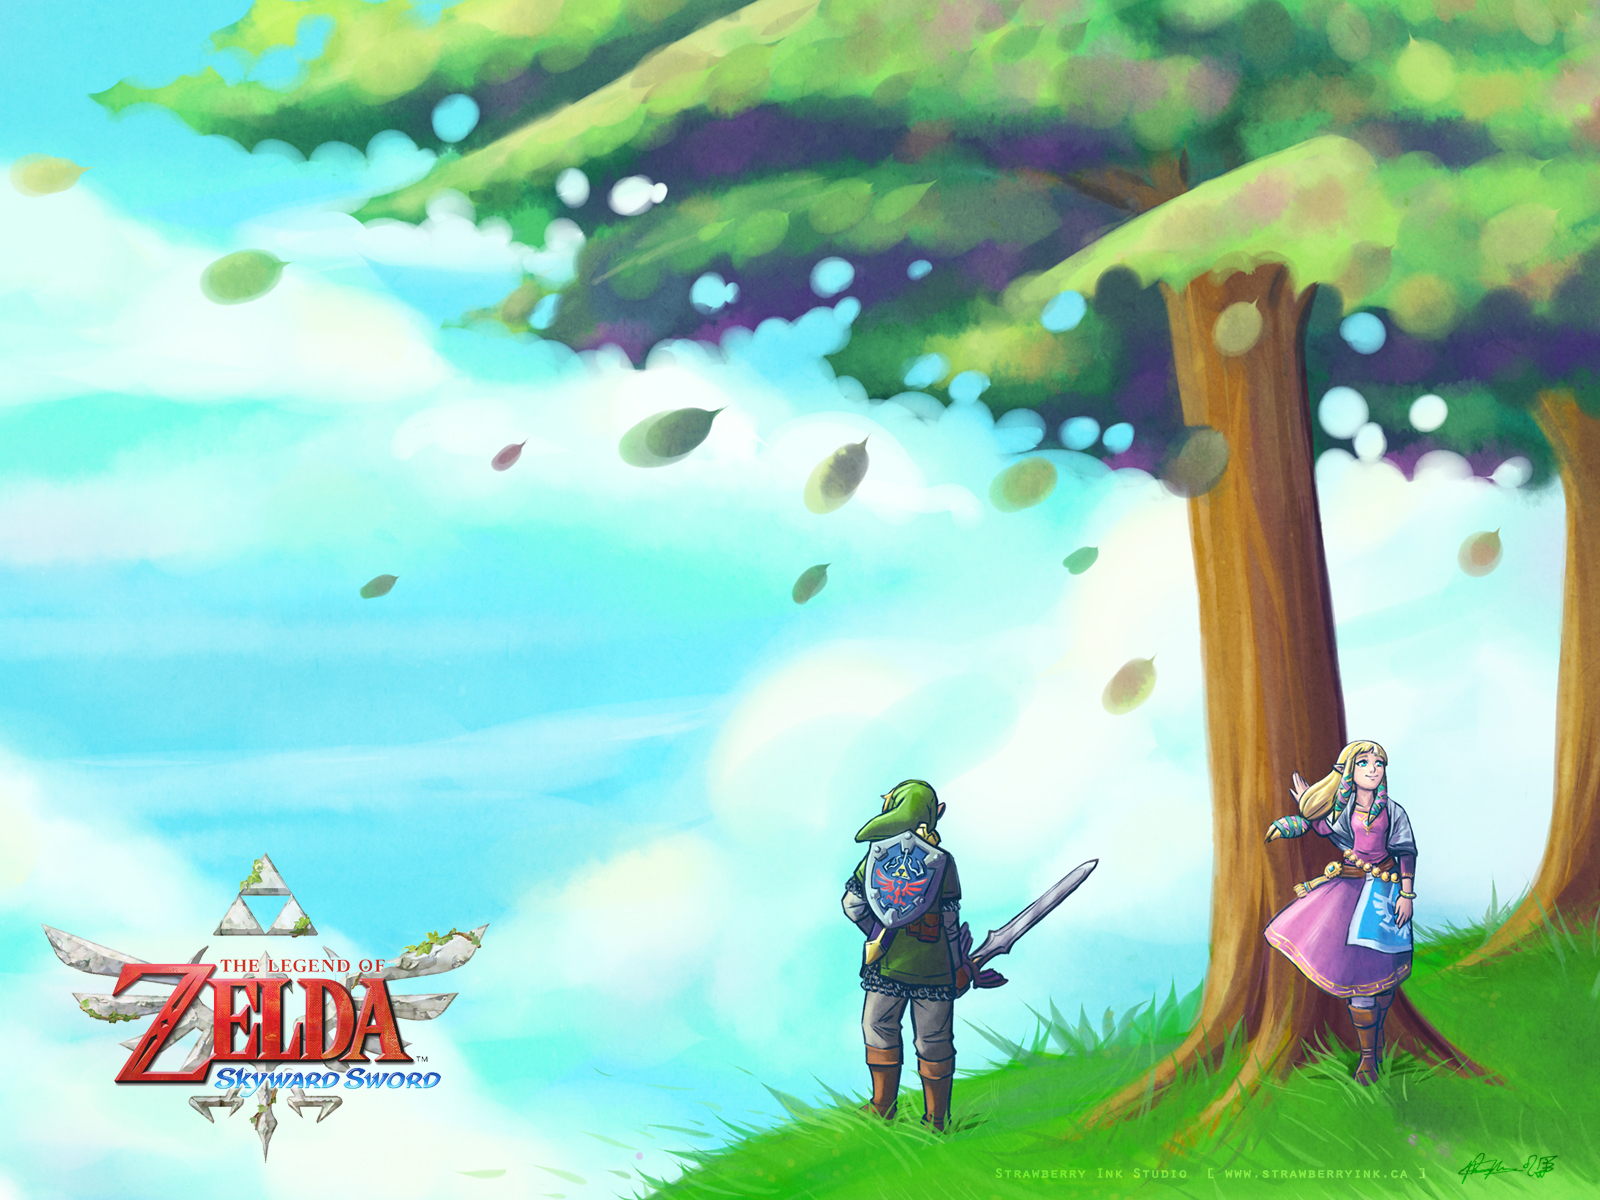 LoZ Skyward Sword wallpaper by Meibatsu